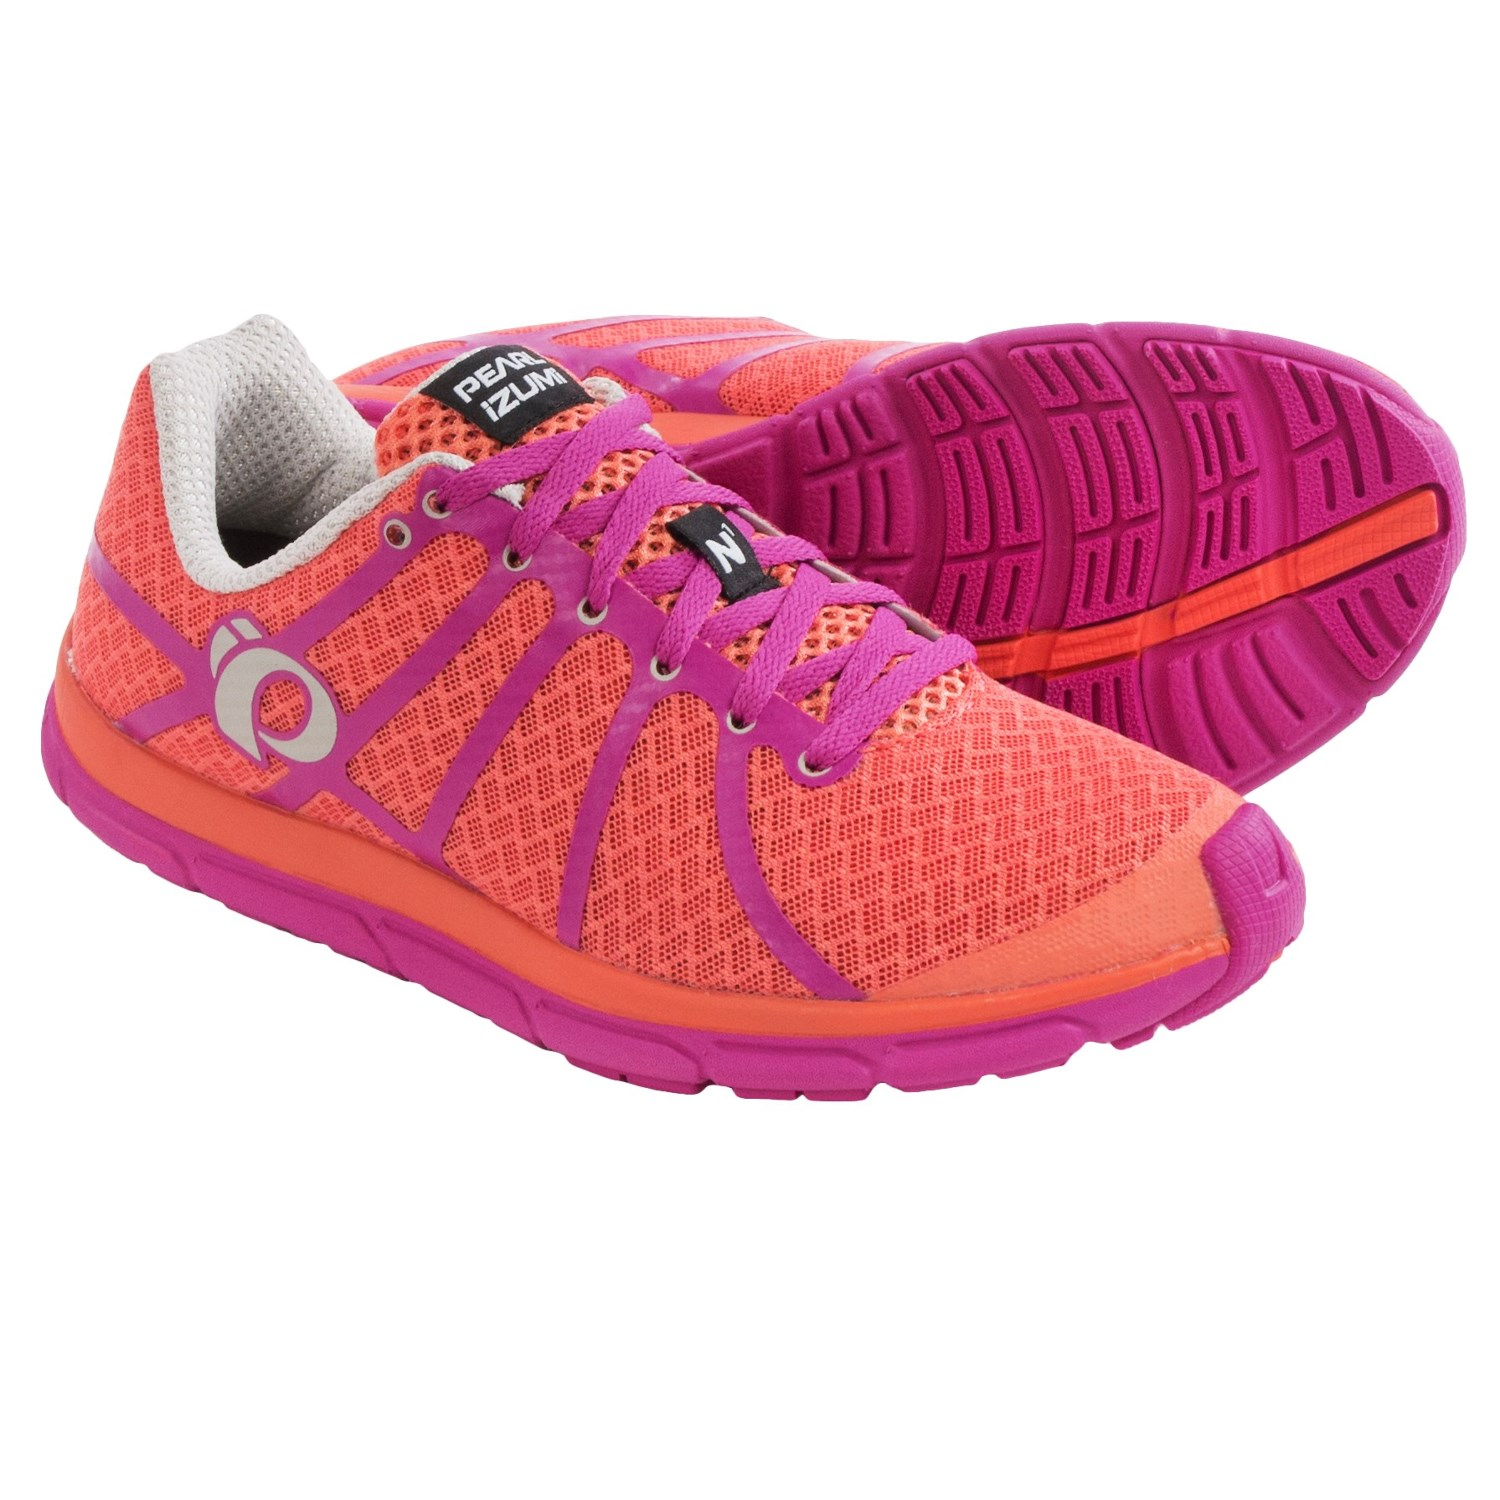 Everlast Running Shoes Any Good